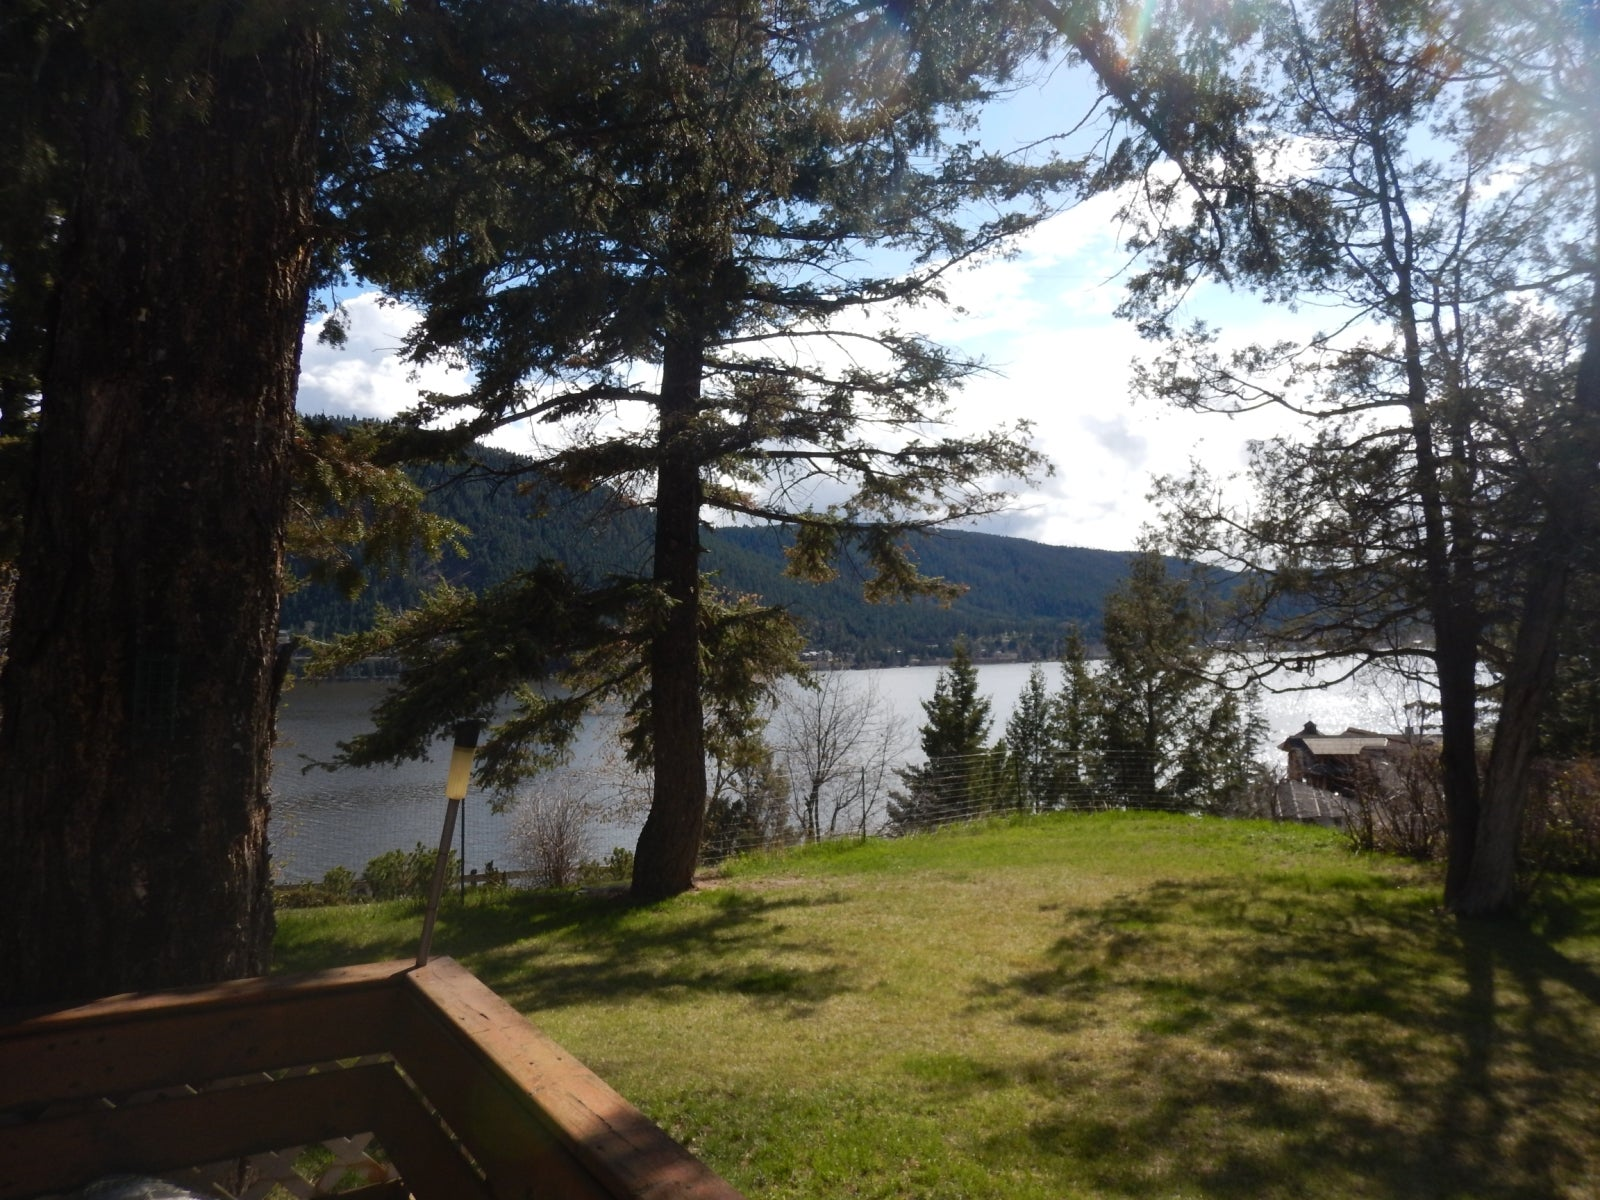 111 FALCON ROAD - Williams Lake House for sale, 3 Bedrooms (R2162861) #23